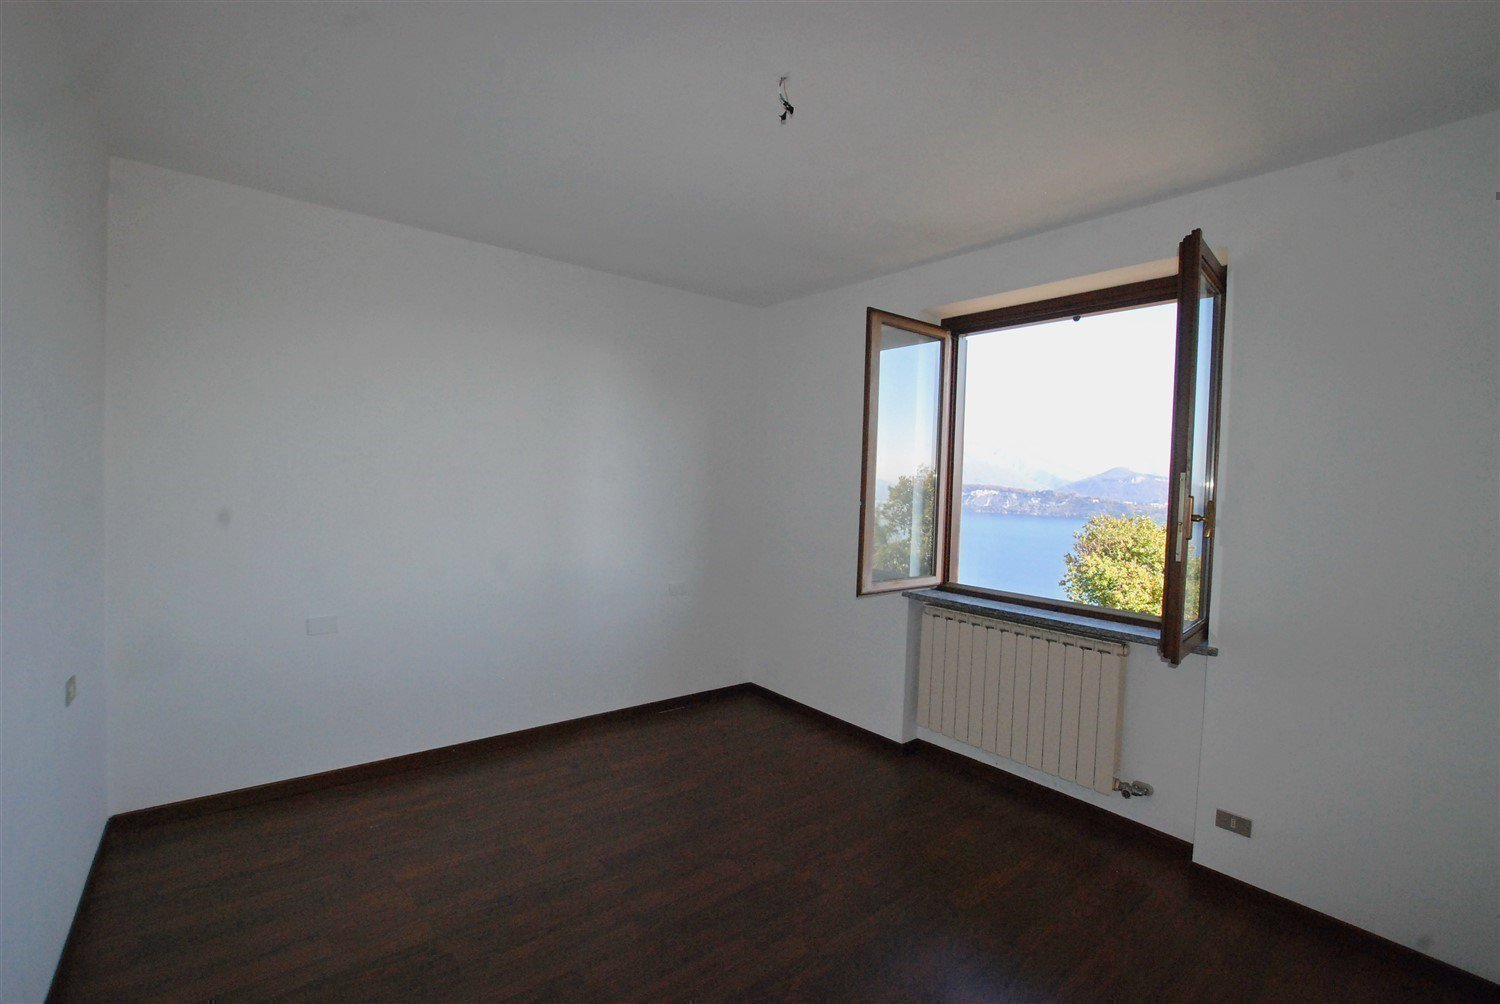 Apartment for sale in Belgirate- room